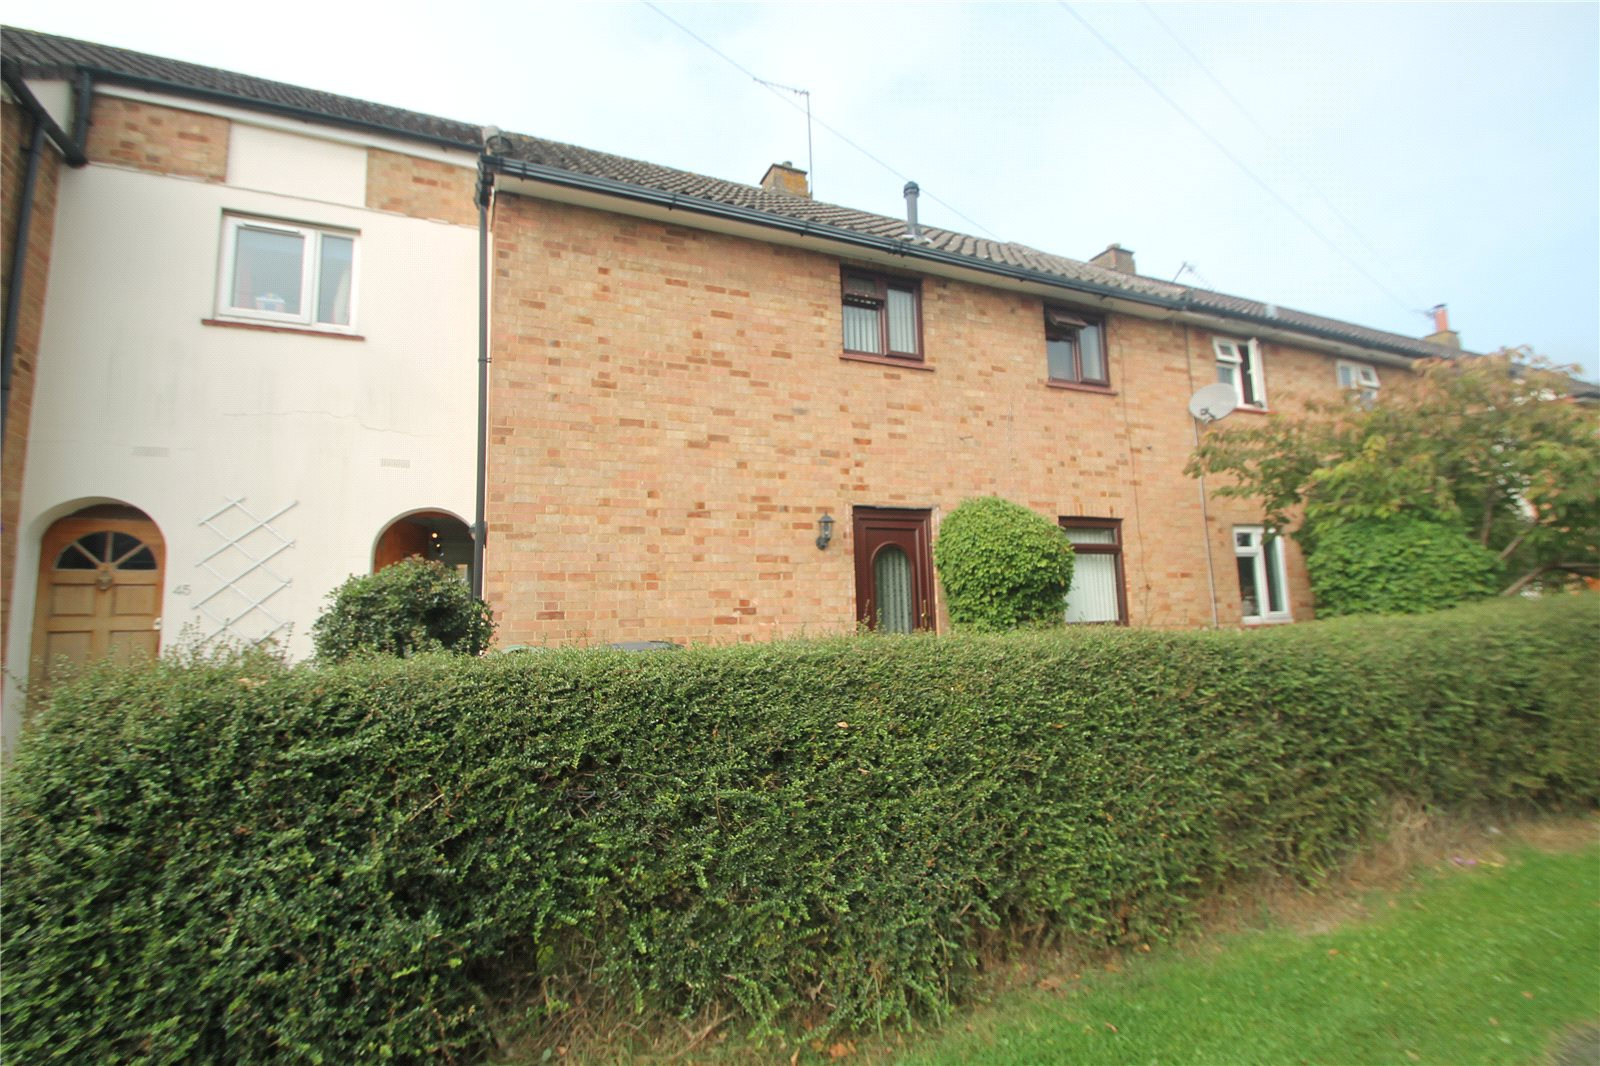 2 Bedrooms Terraced House for sale in Coventry Road Tonbridge TN10